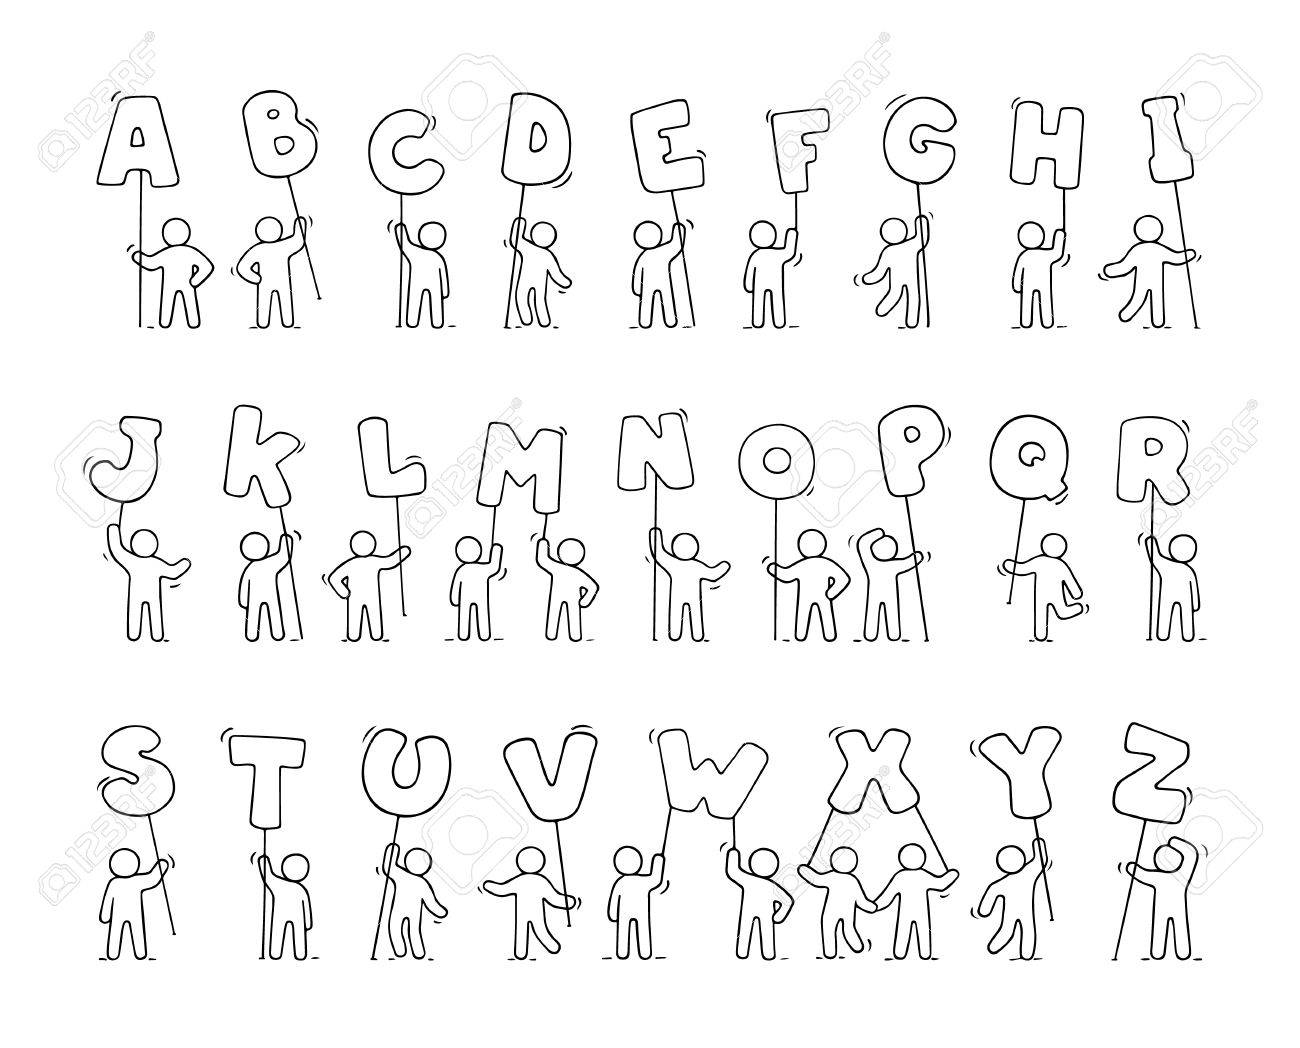 Cartoon icons set of sketch little people with letters doodle cartoon icons set of sketch little people with letters doodle cute workers with alfabet thecheapjerseys Choice Image